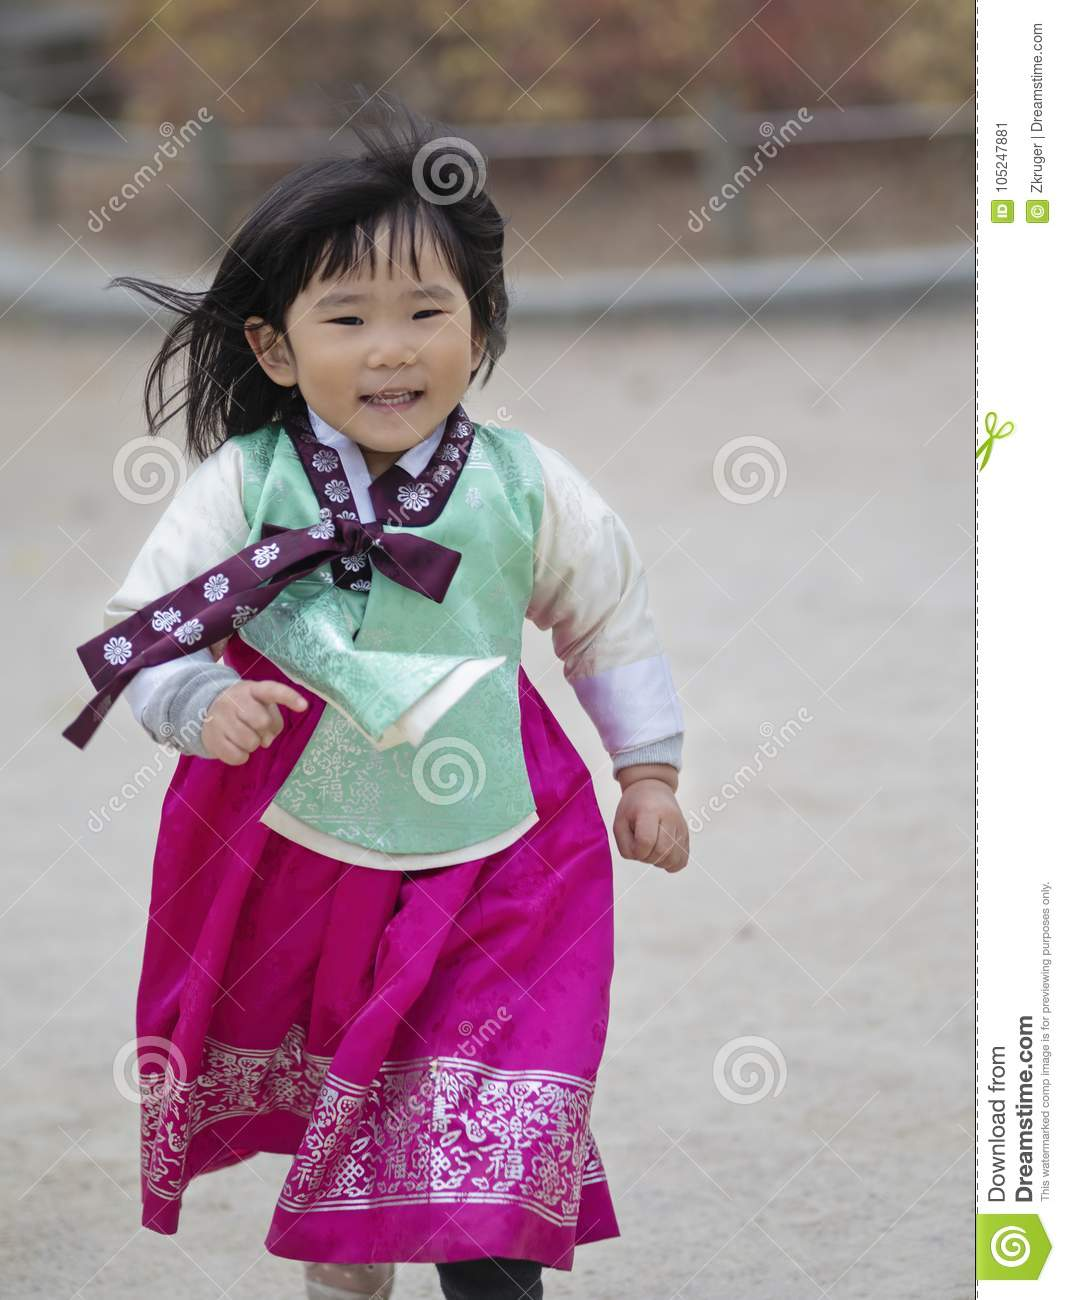 seoul-south-korea-th-november-young-korean-girl-traditional-hanbok-dress-gyeongbokkung-palace-young-korean-girl-105247881 <h1>The Lost Key to Dominican Mail Order Bride Discovered</h1>